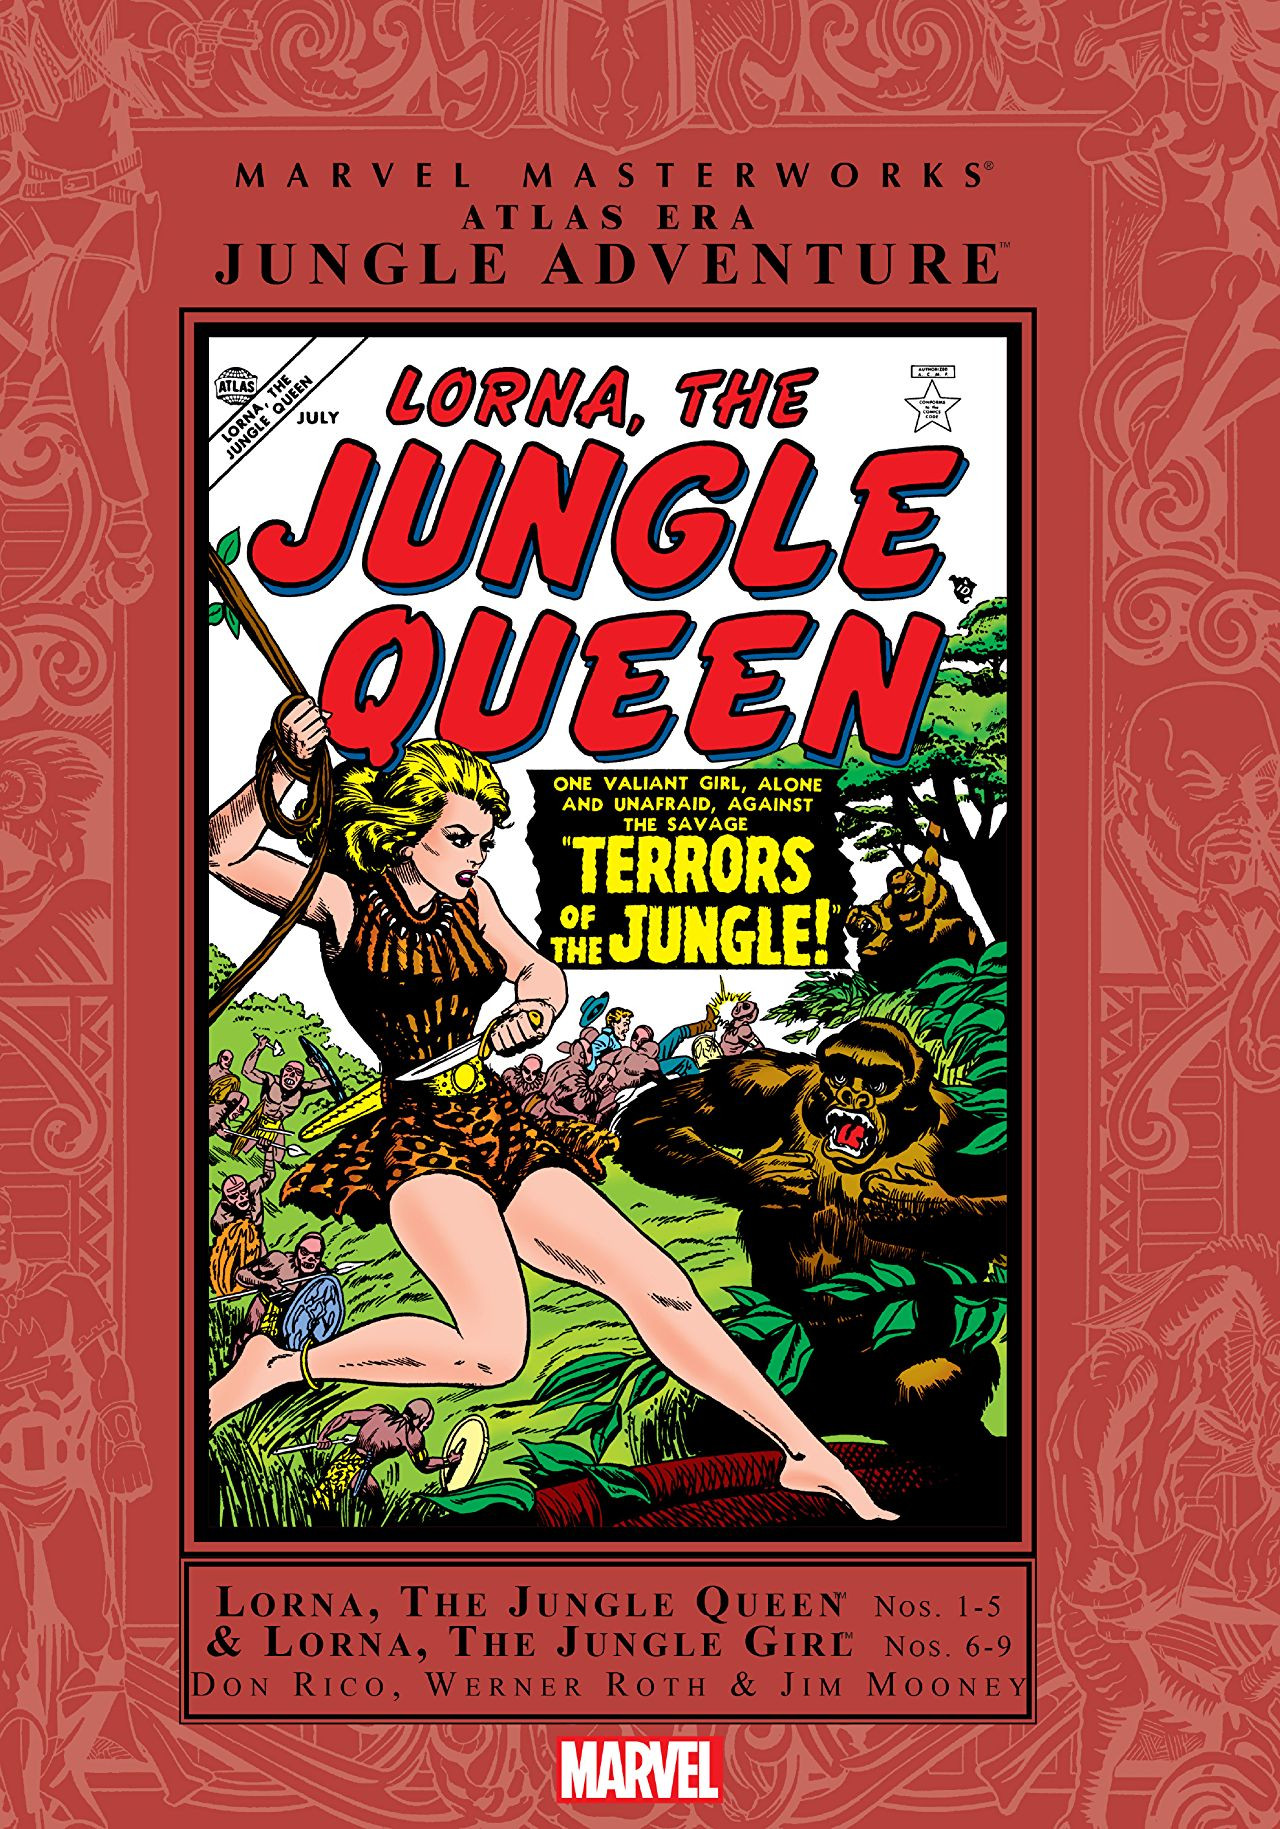 Marvel Masterworks: Atlas Era Jungle Action Vol 1 1